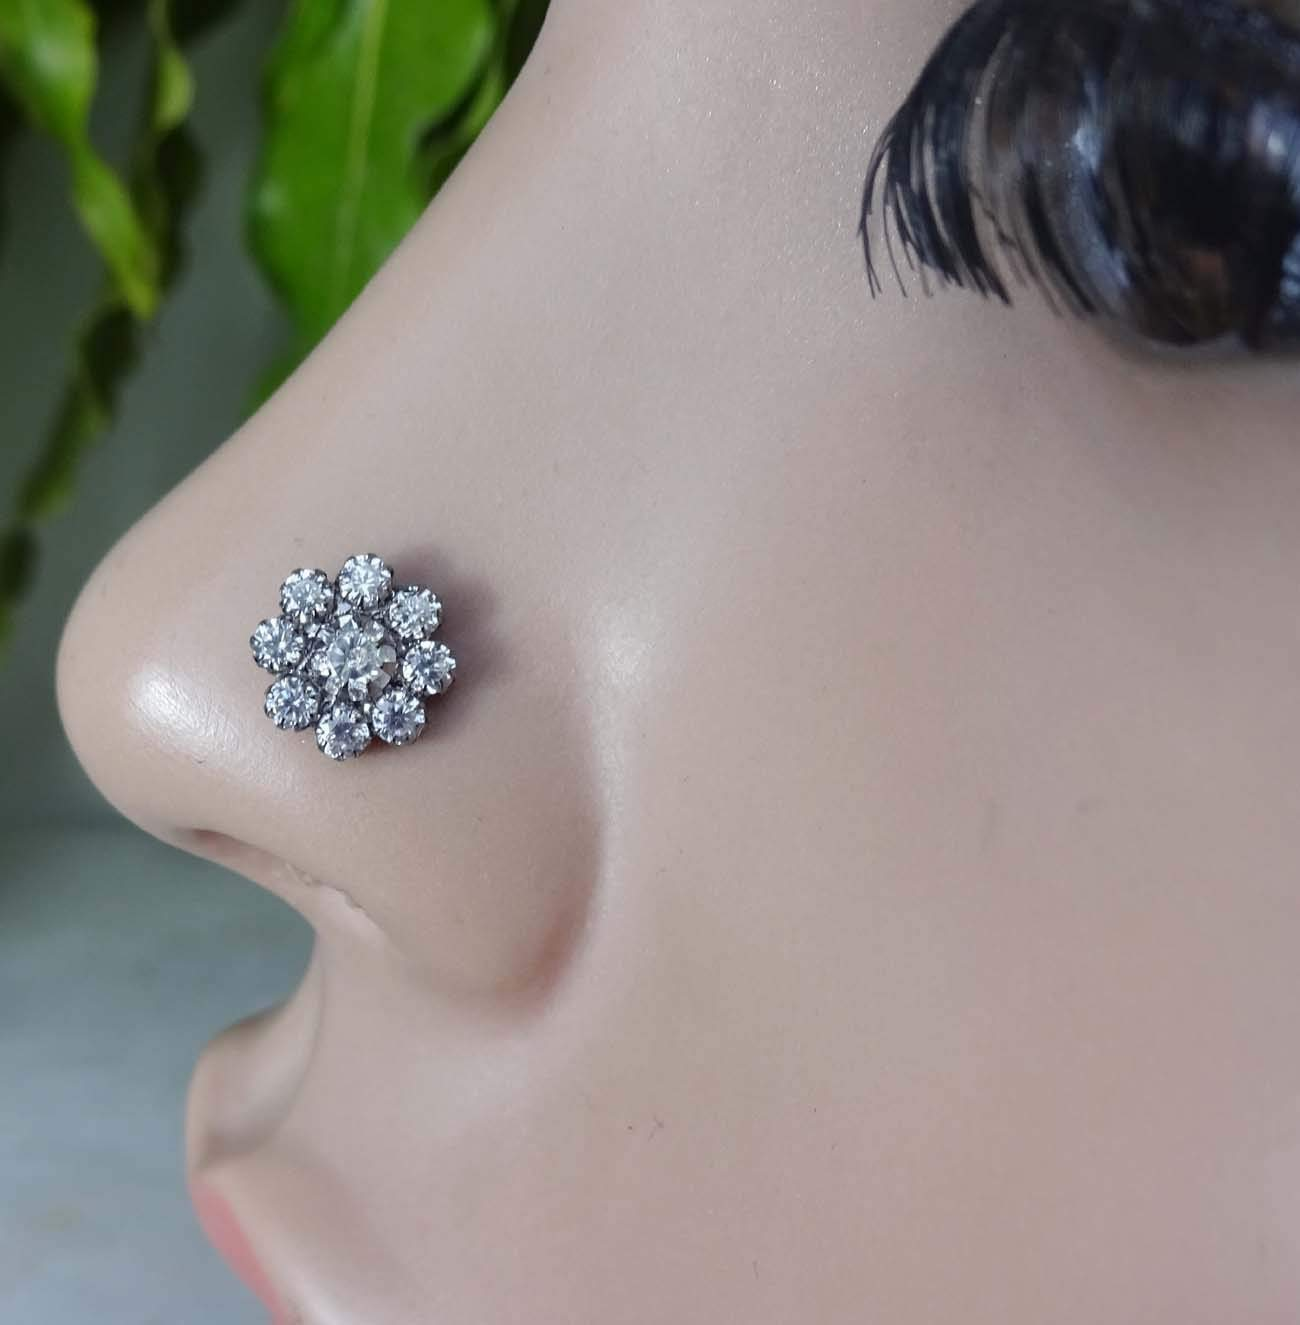 Sterling Silver Nose Stud Silver Nose Stud Nose Stud Nose Ring Stud Nose Stud Silver 20g Silver Nose Piercing Jewelry Indian Nose Stud